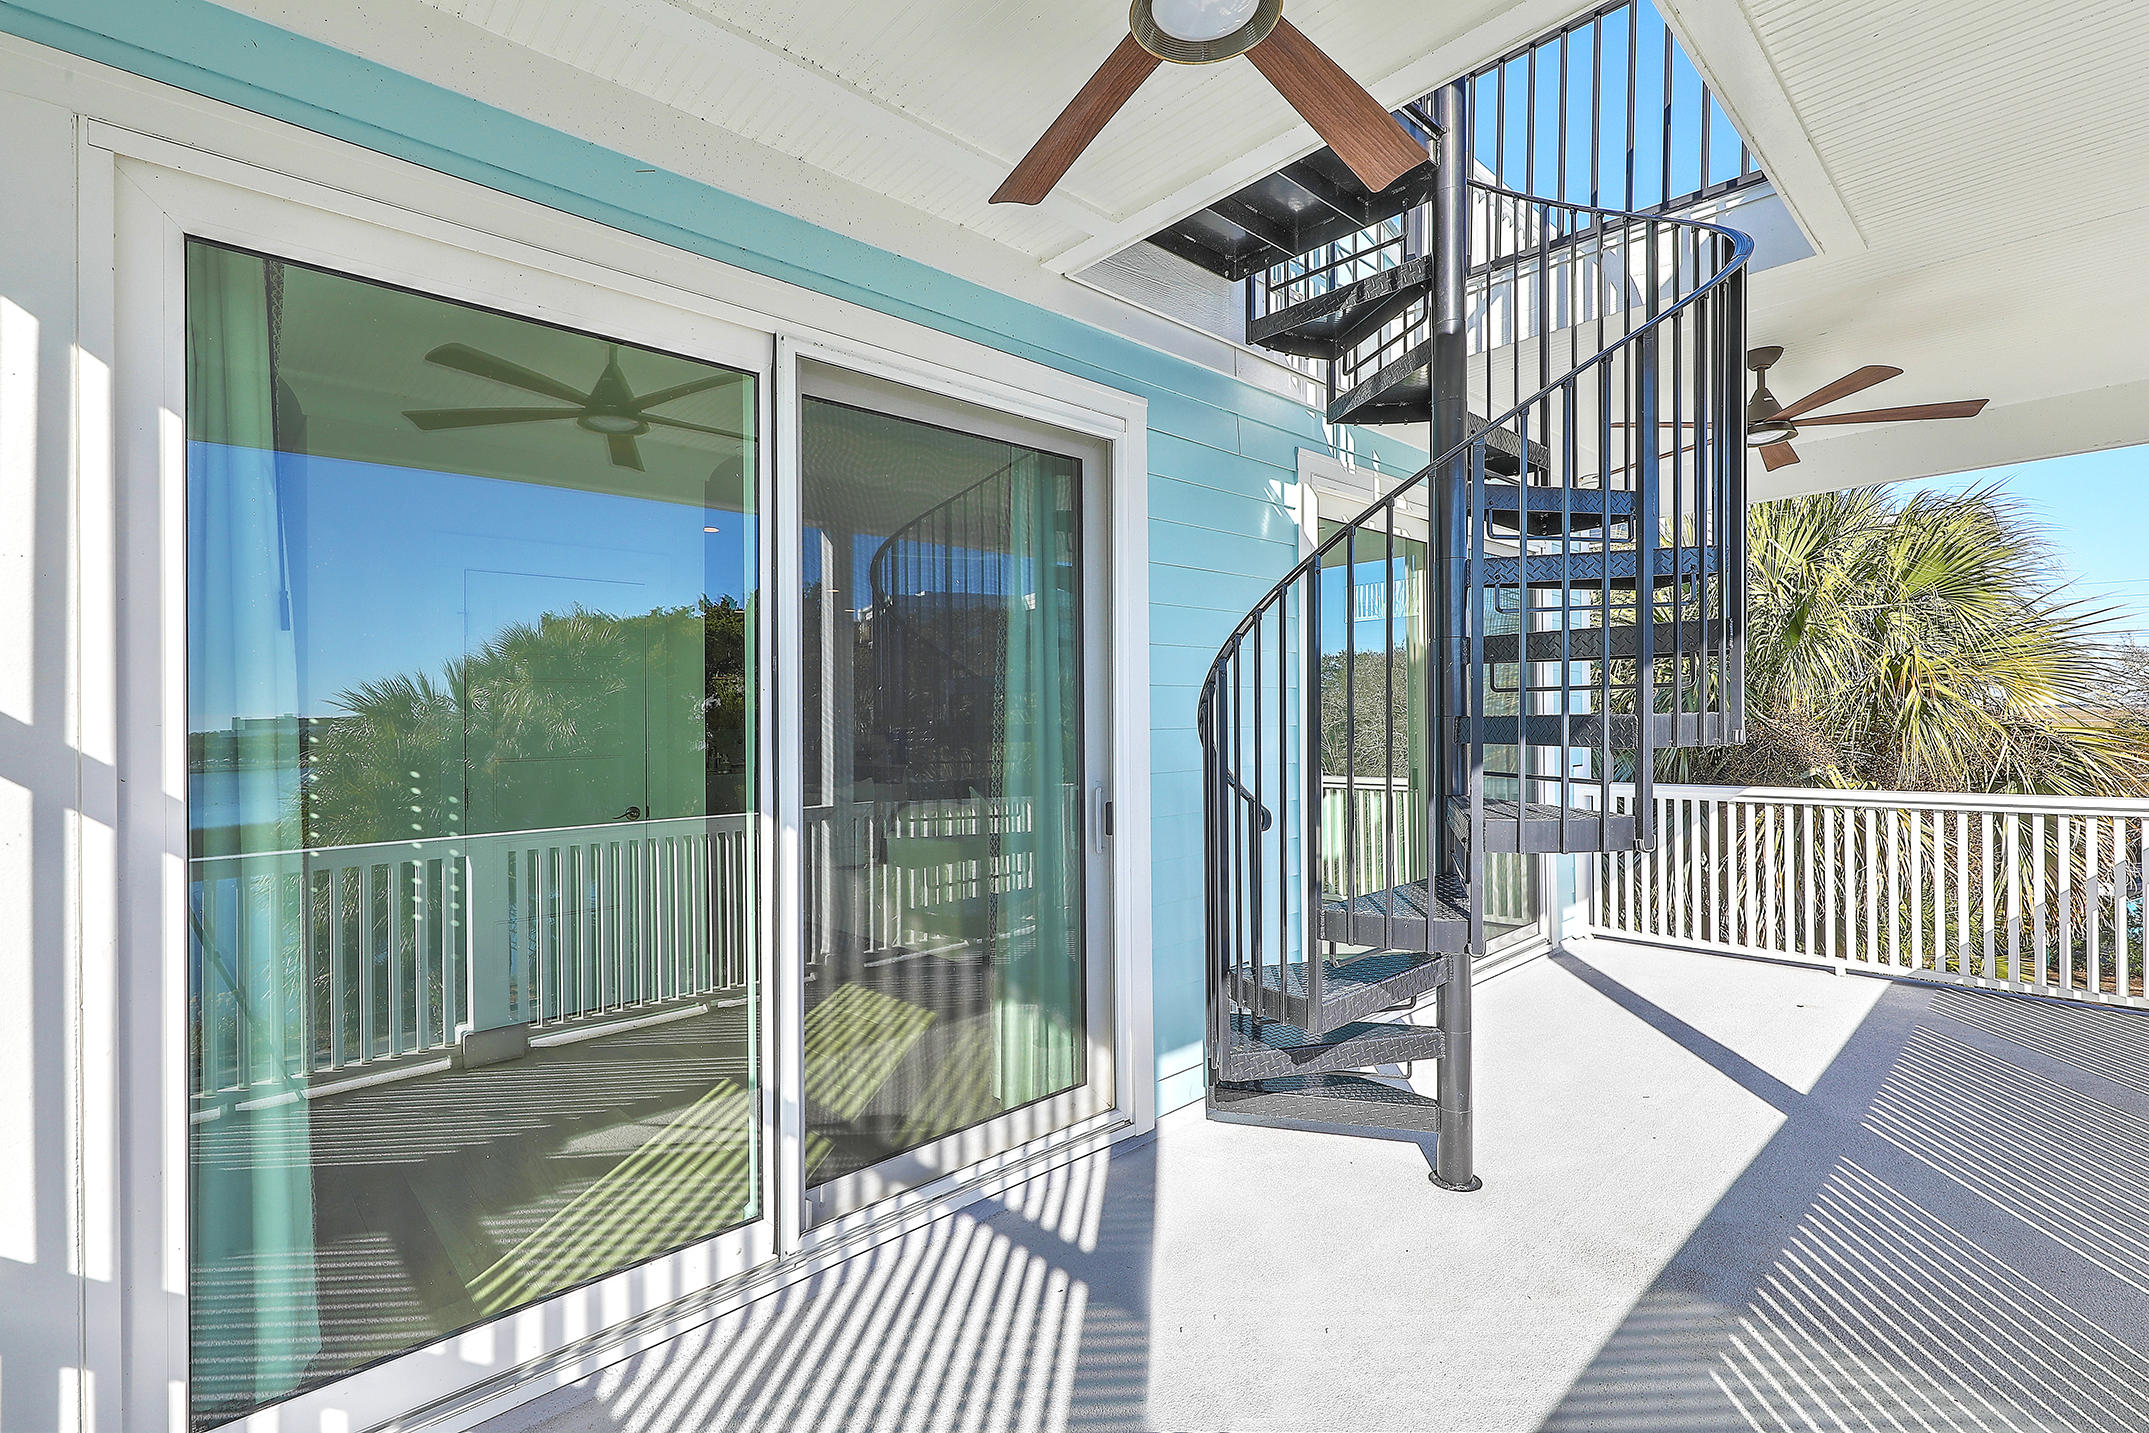 Mariners Cay Homes For Sale - 1002 Mariners Cay, Folly Beach, SC - 16